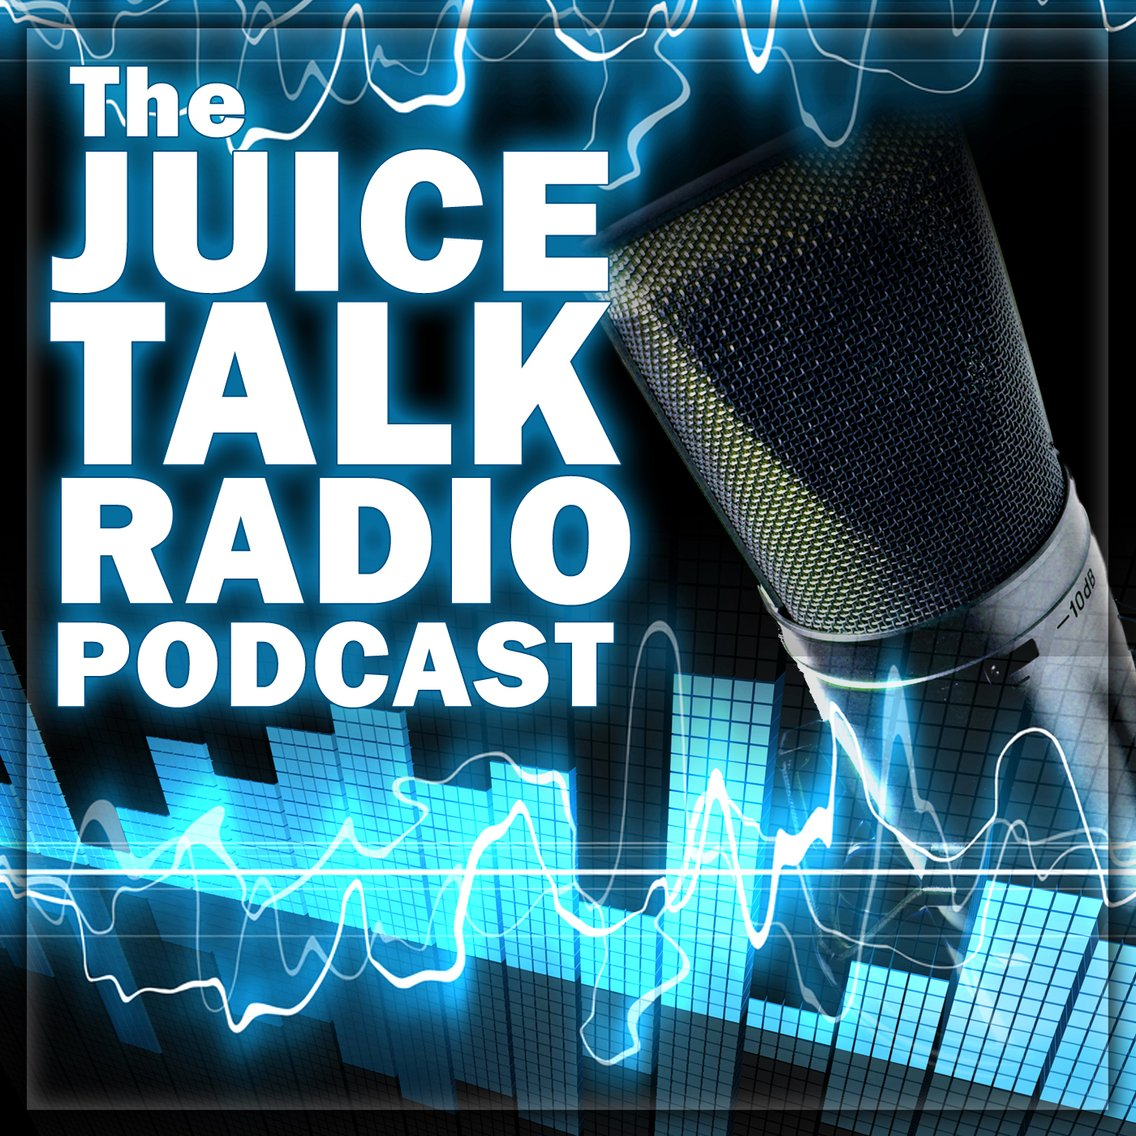 The Juice Talk Radio Podcast - imagen de portada